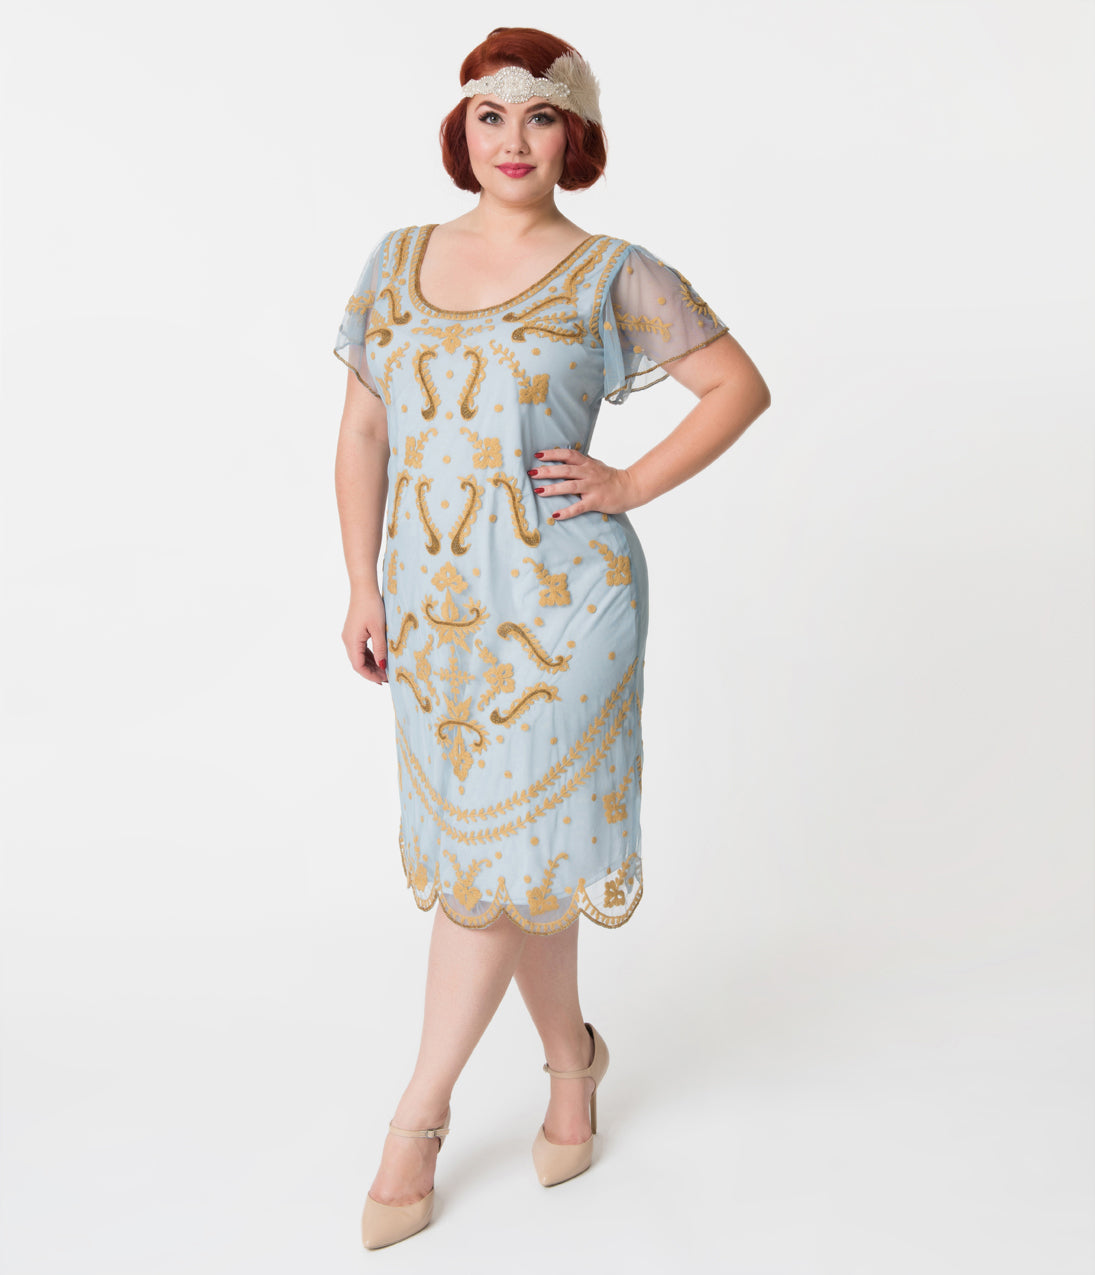 1920s Style Dresses, Flapper Dresses Vintage Style Plus Size Light Blue  Gold Embroidered Florence Flapper Dress $98.00 AT vintagedancer.com